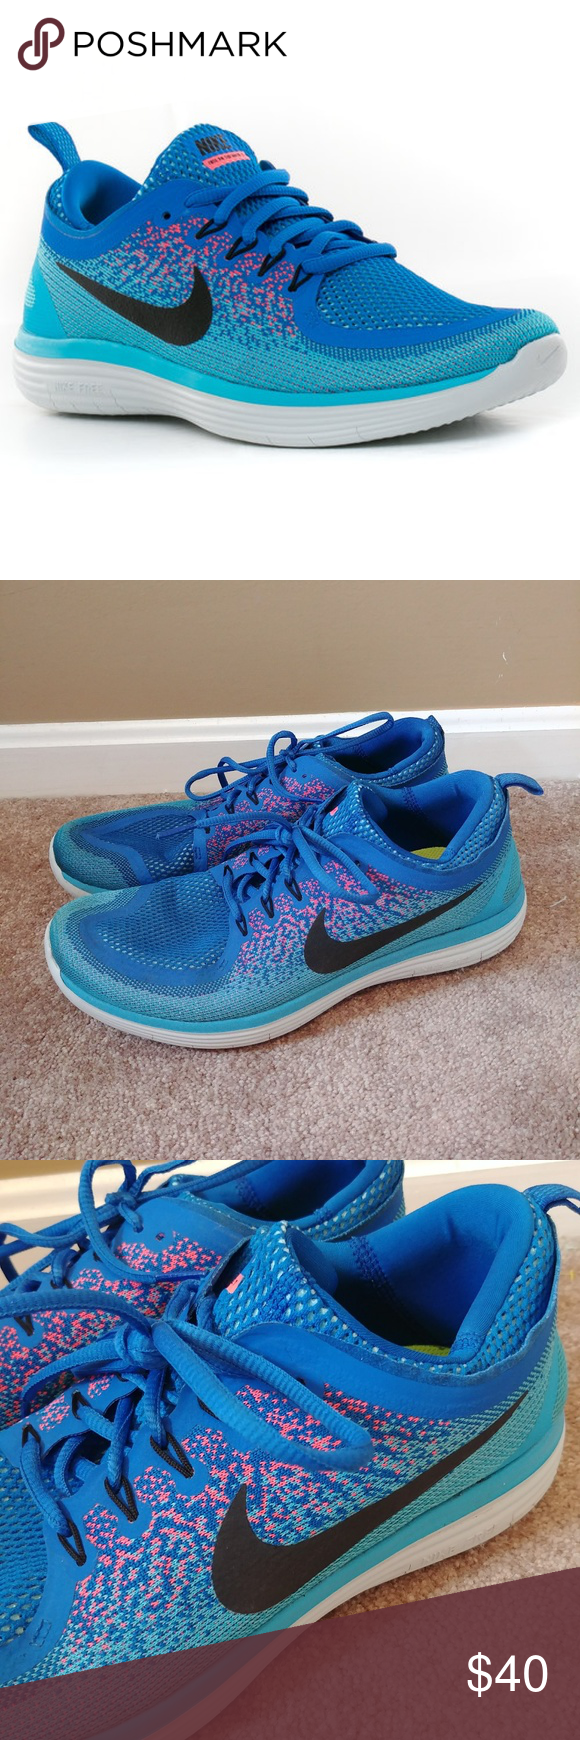 ad604c42643f Men s Nike Free Run Distance 2 Running Shoe Blue Size Men s 11. Very good  condition